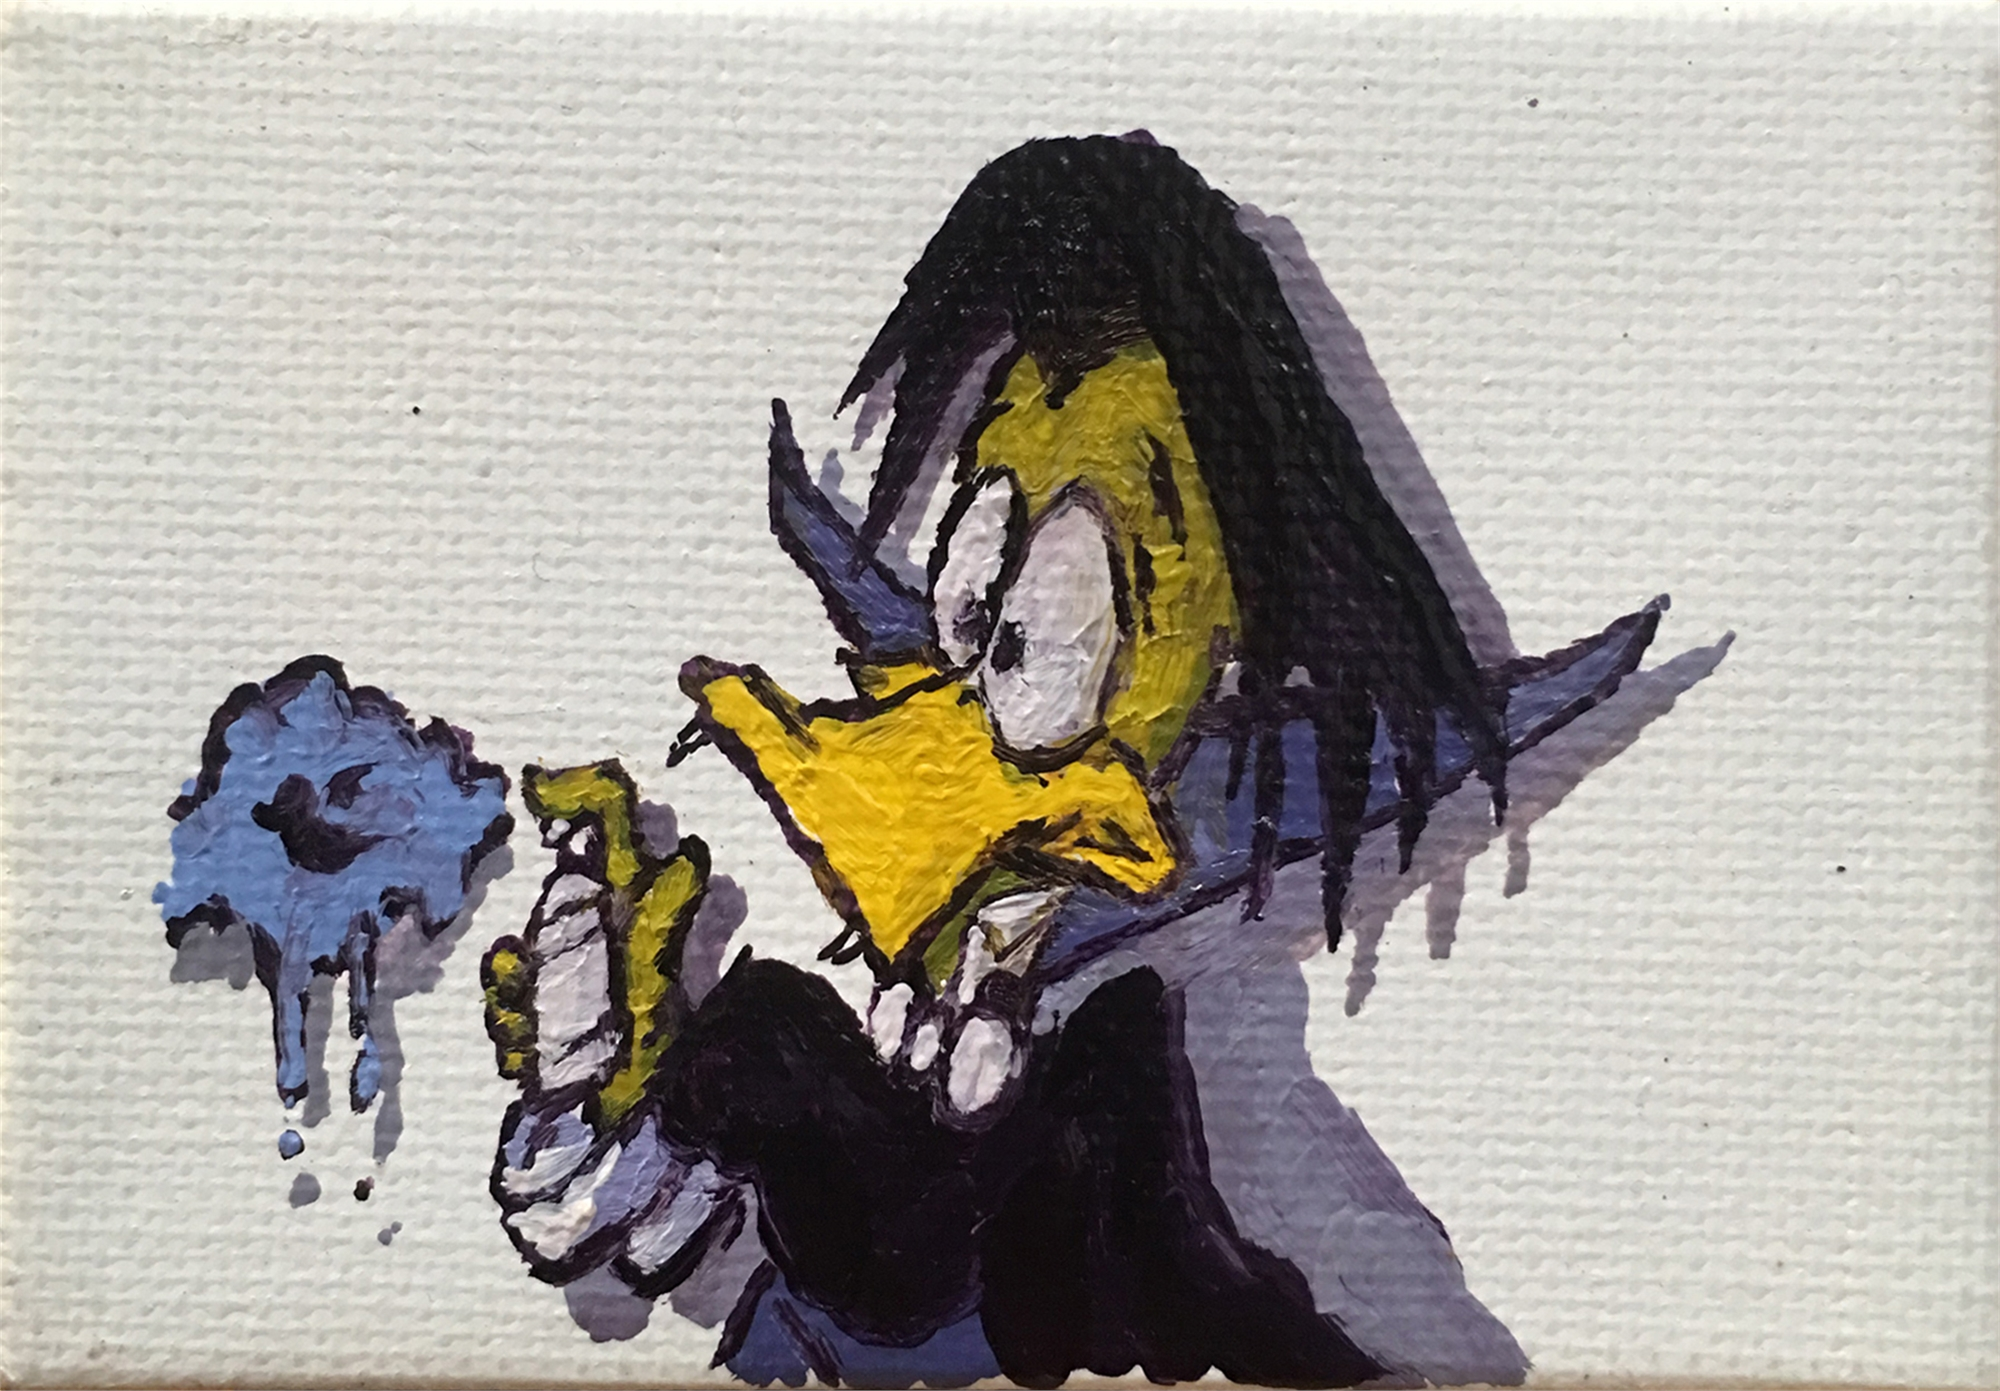 Count Duckula by Delton Demarest